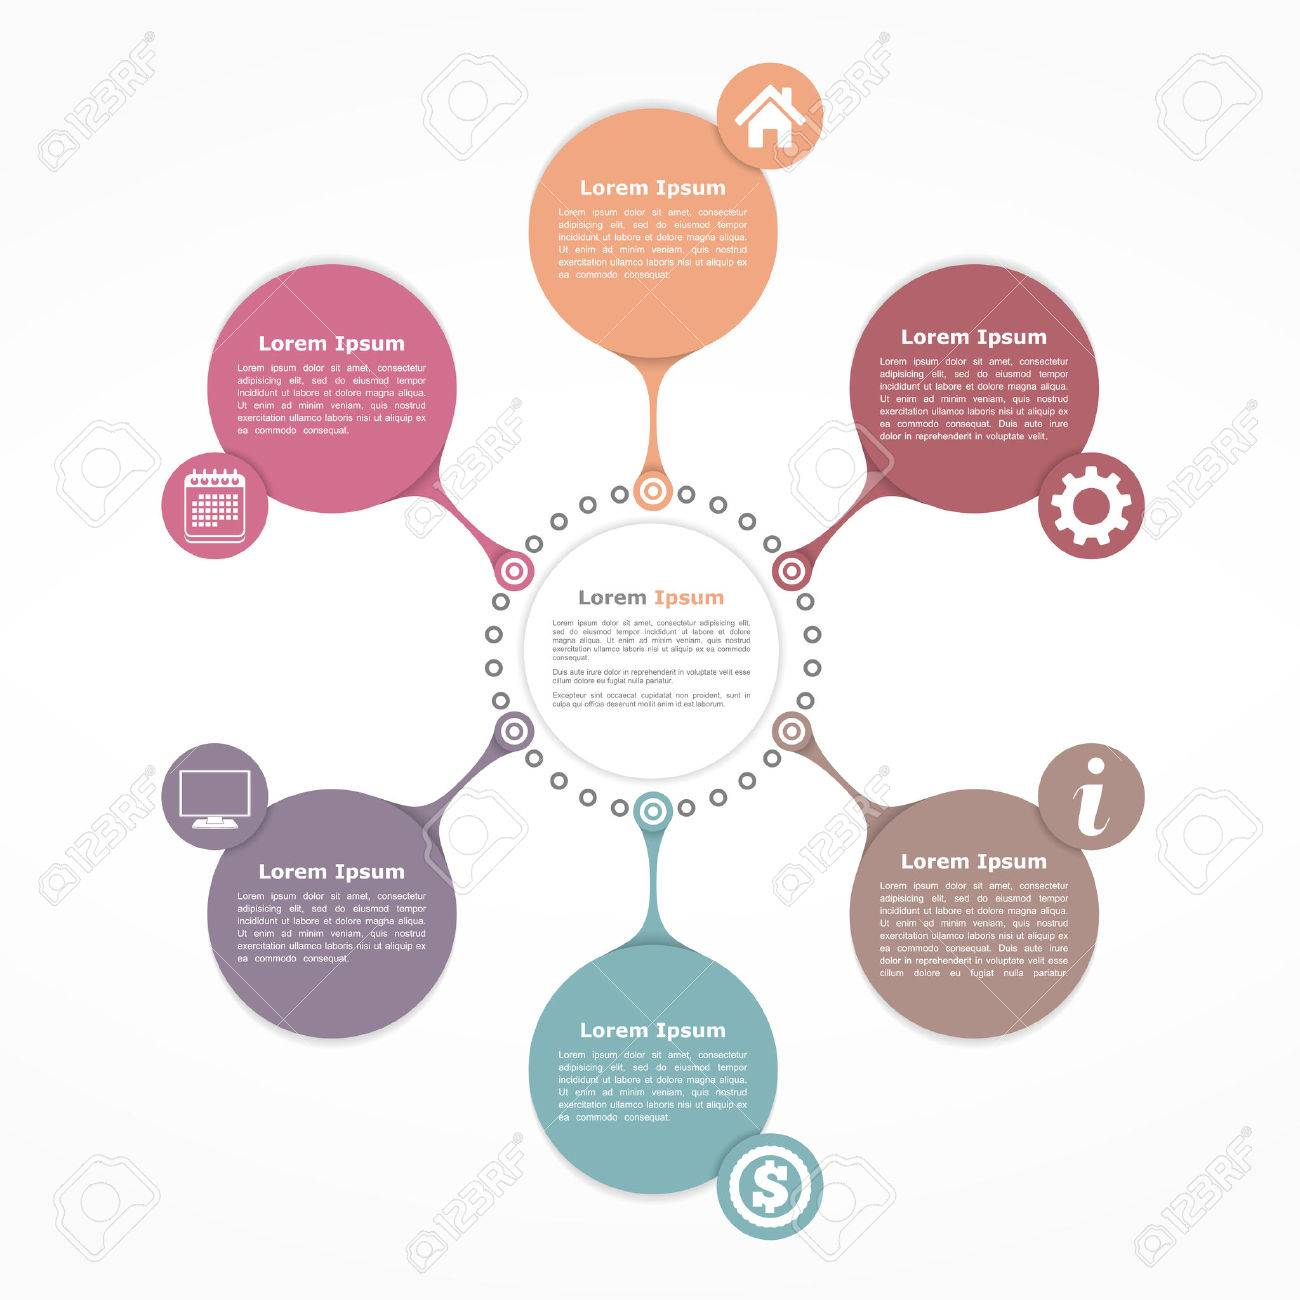 Circle flow diagram template with six elements royalty free cliparts circle flow diagram template with six elements stock vector 48491627 ccuart Gallery